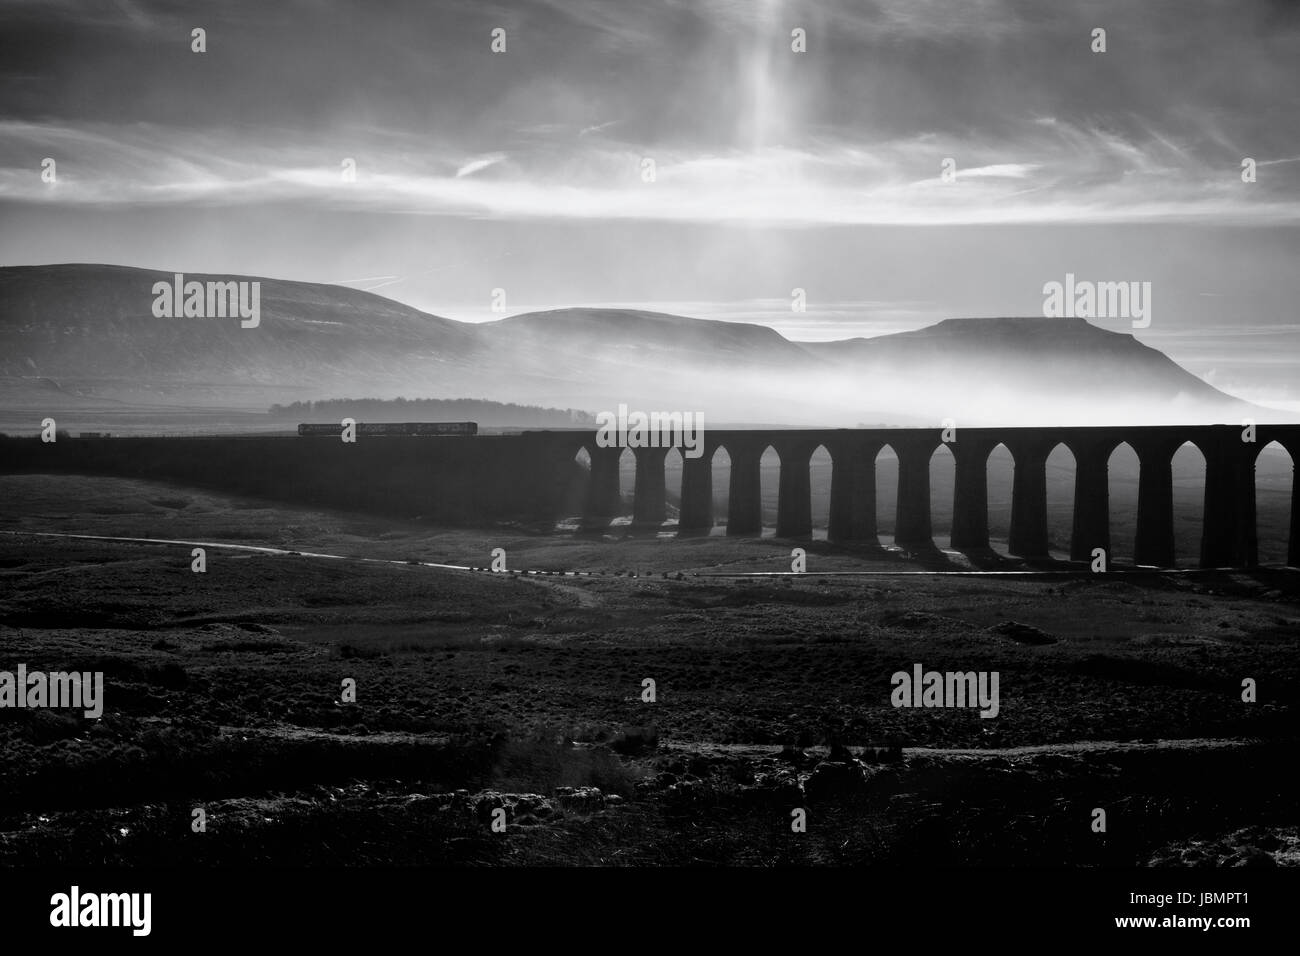 Northern Rail 1151 Carlisle - Leeds train  passes Ribblehead viaduct with Ingleborough behind - Stock Image